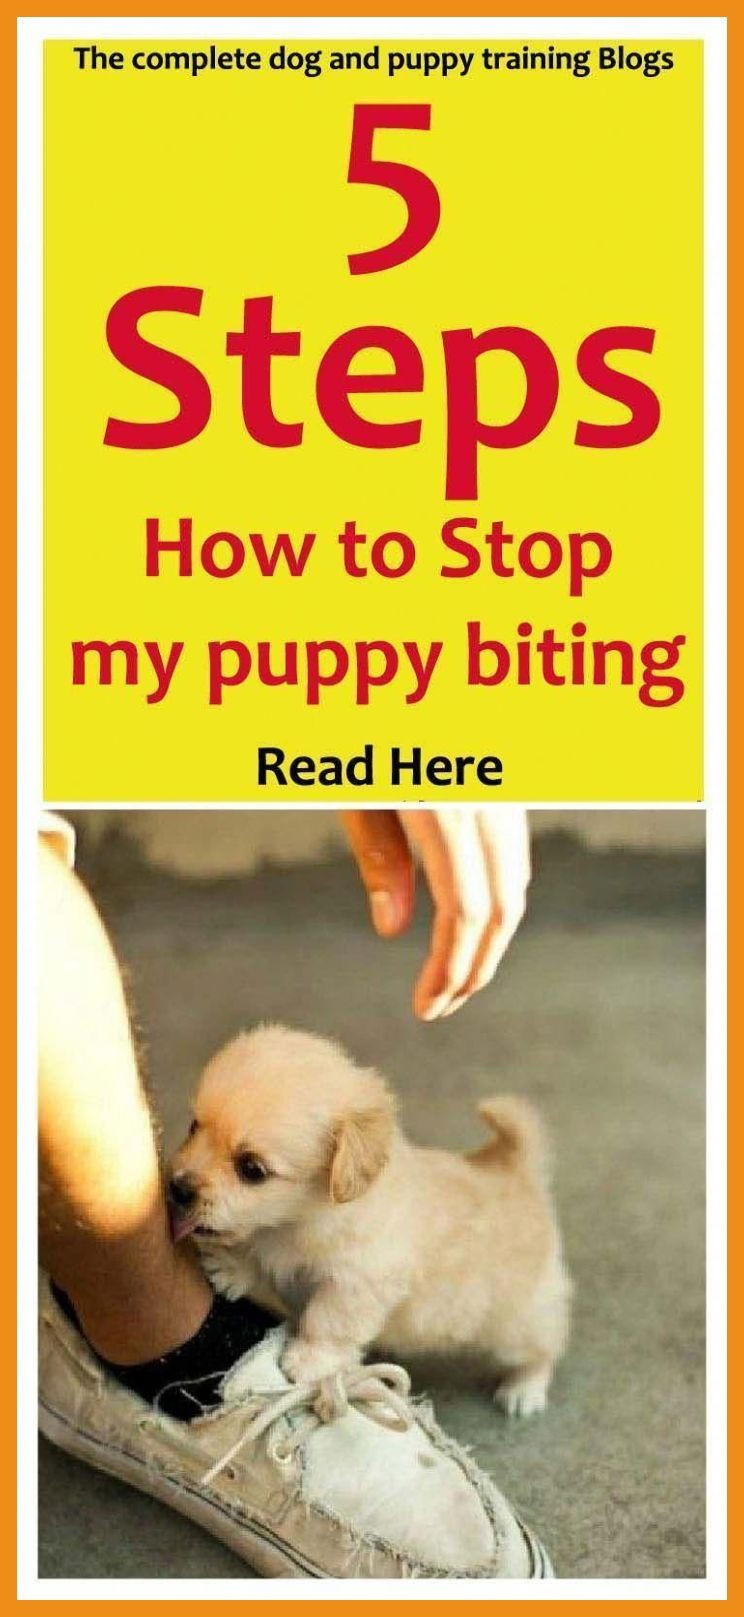 How To Make A Puppy Stop Biting Puppy Biting Training Tips Stop Puppy From Biting How T Dog Training Obedience Puppy Biting Easiest Dogs To Train